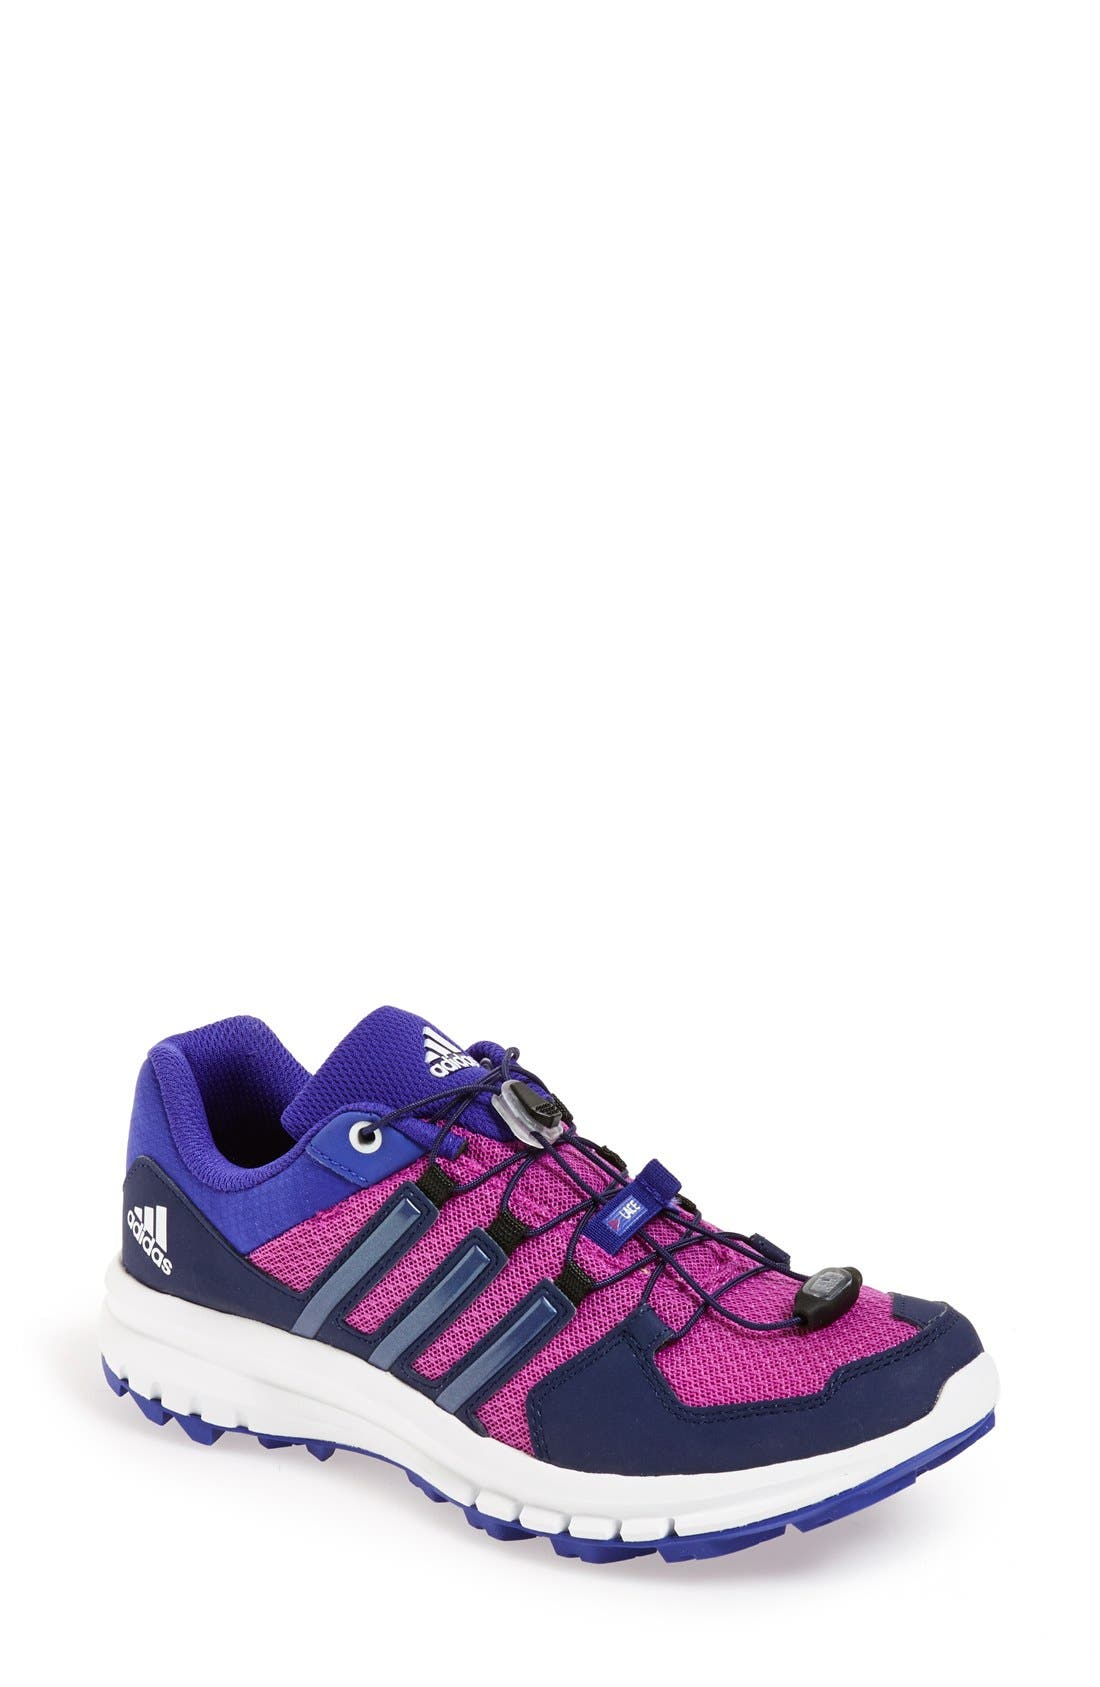 Alternate Image 1 Selected - adidas 'Duramo Cross Trail' Running Shoe (Women)